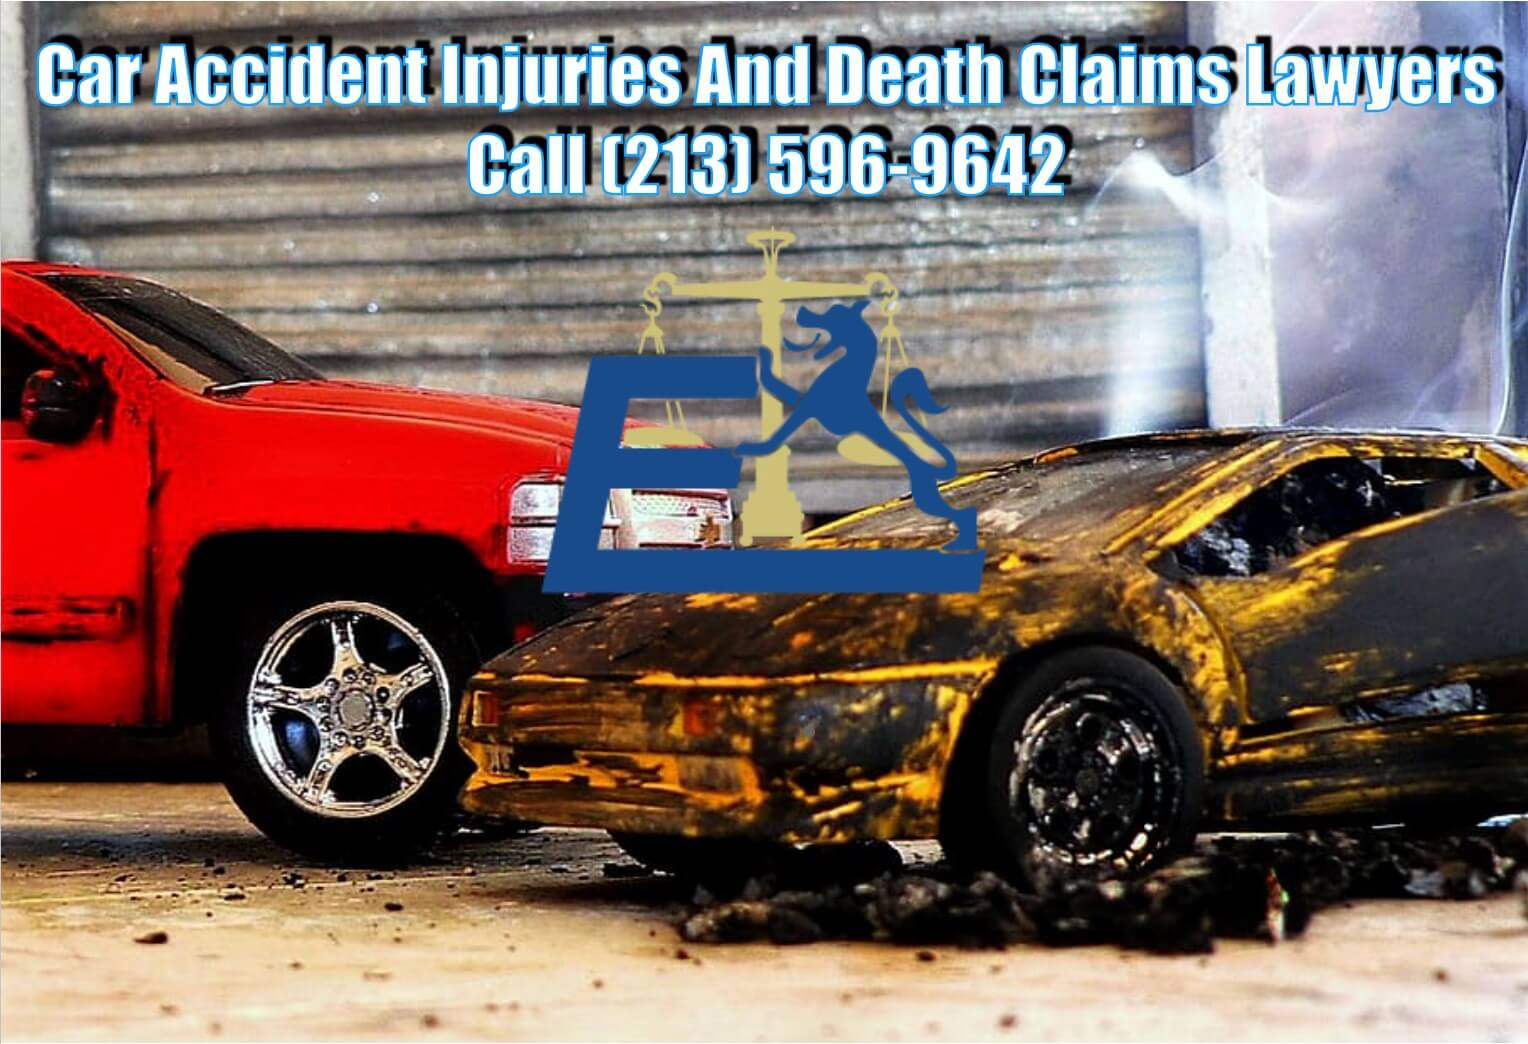 Injured or did someone die in a crash? Contact Ehline law Los Angeles car crash lawyers today.